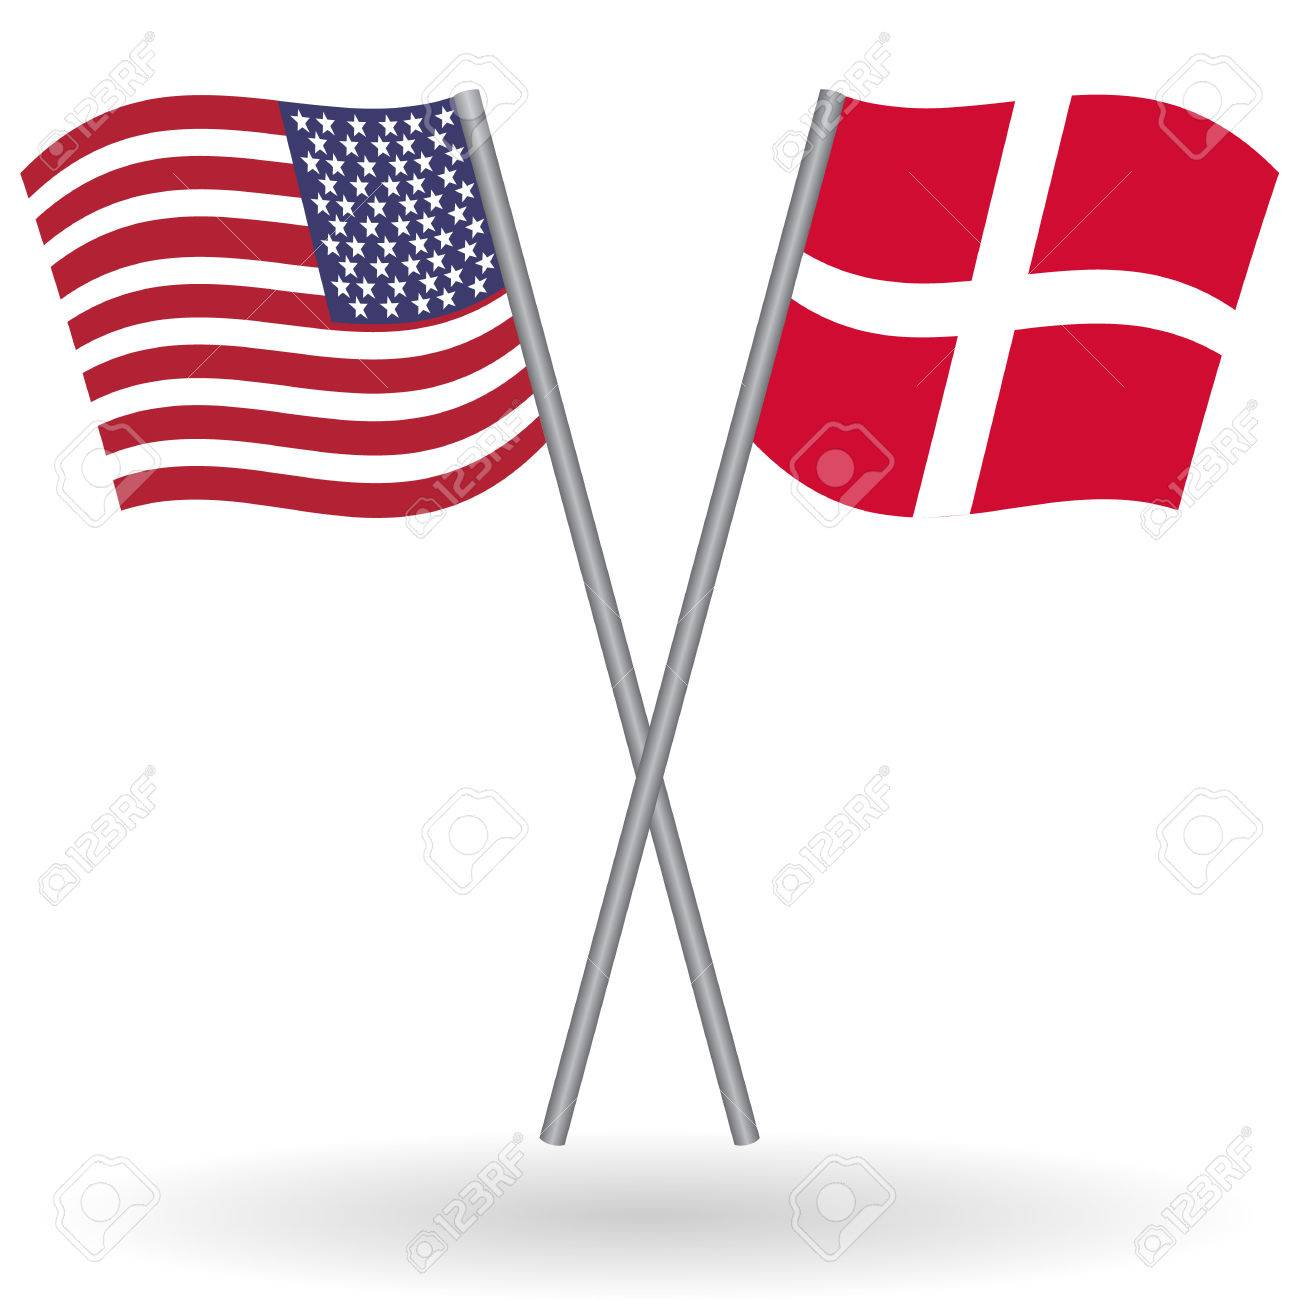 American And Danish Flags This Flags Represents The Relationship - Denmark flags